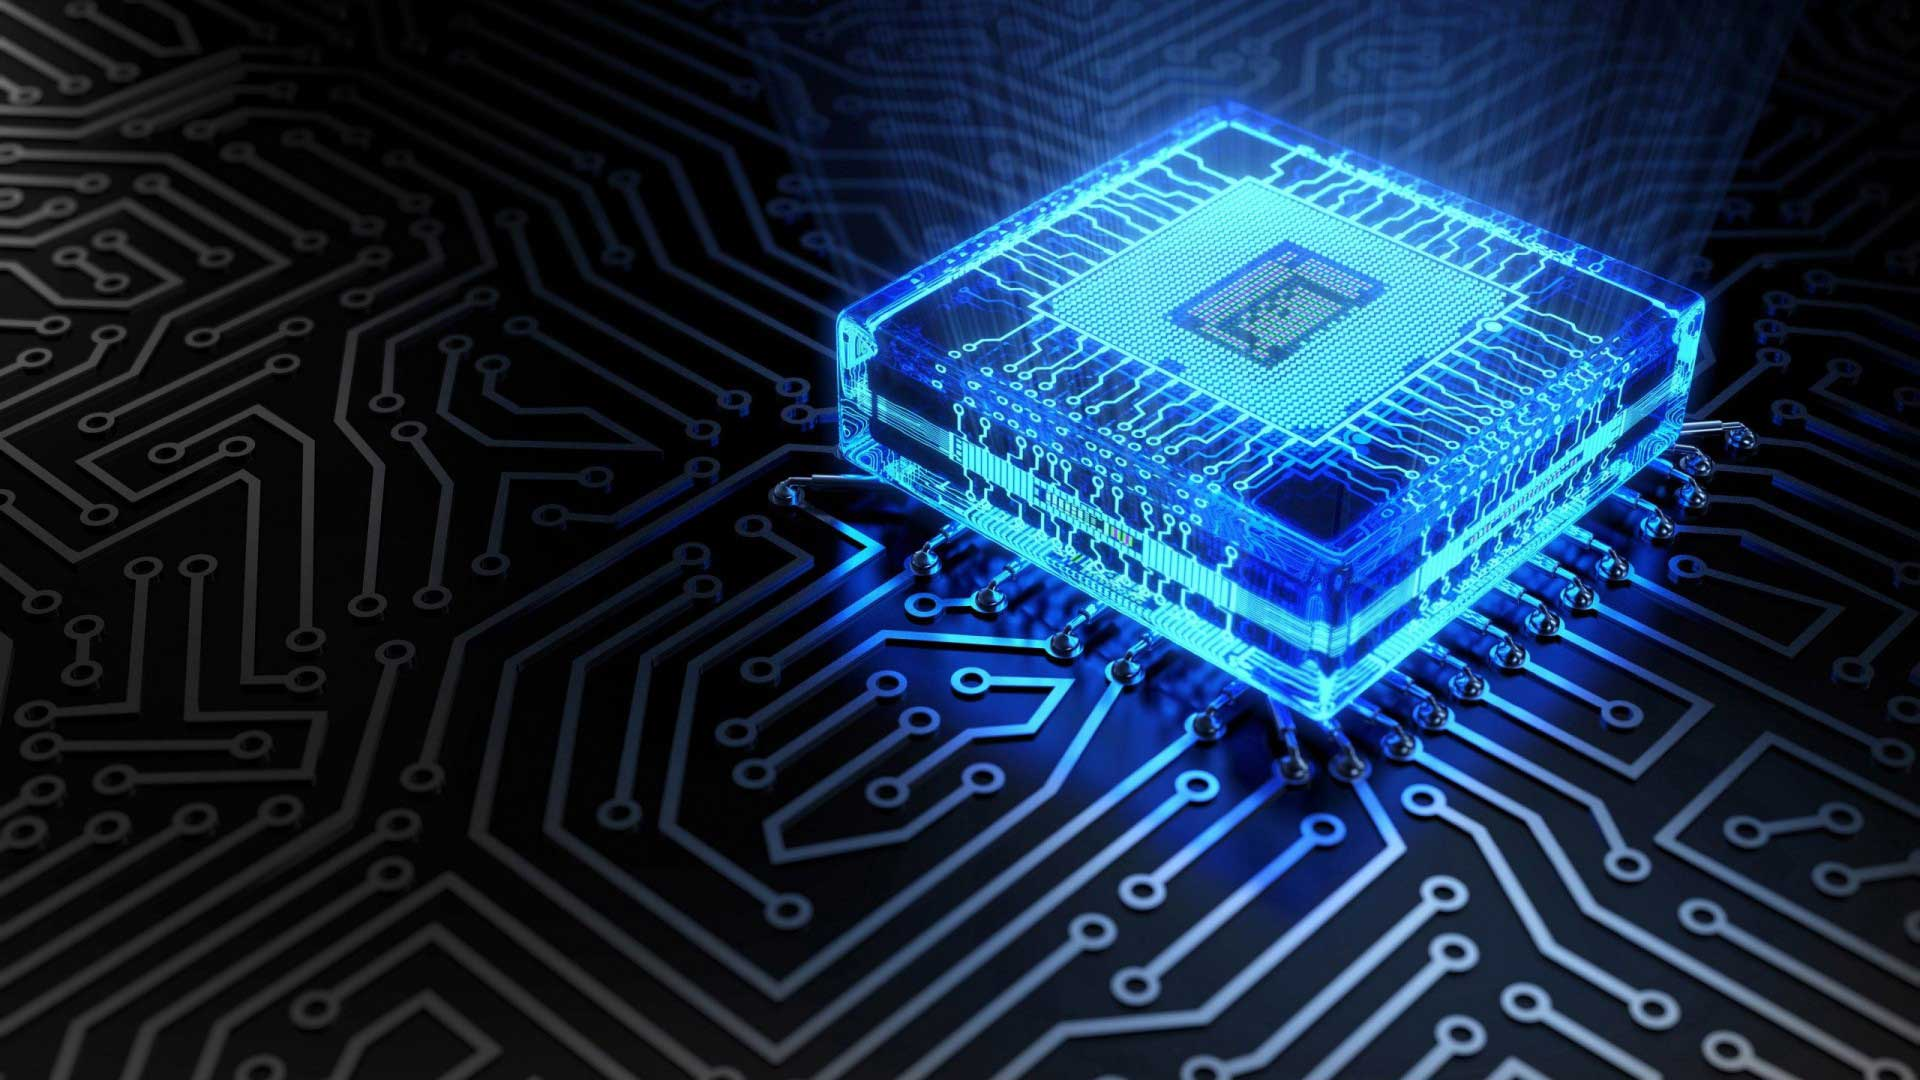 Micro chip technology